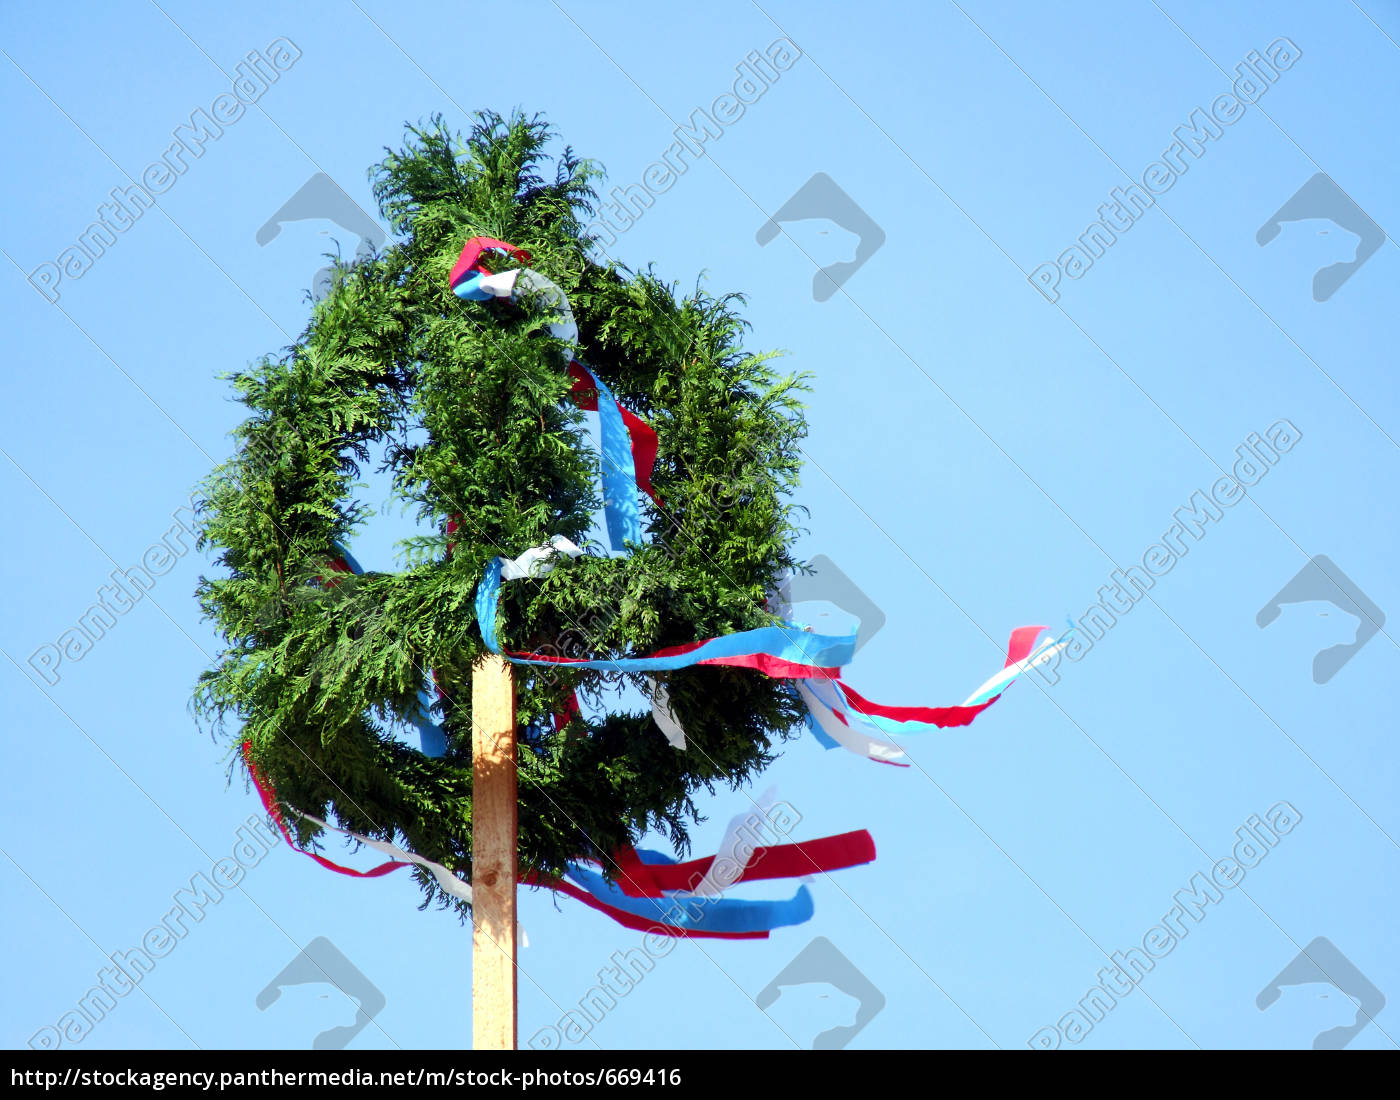 topping-out, wreath - 669416